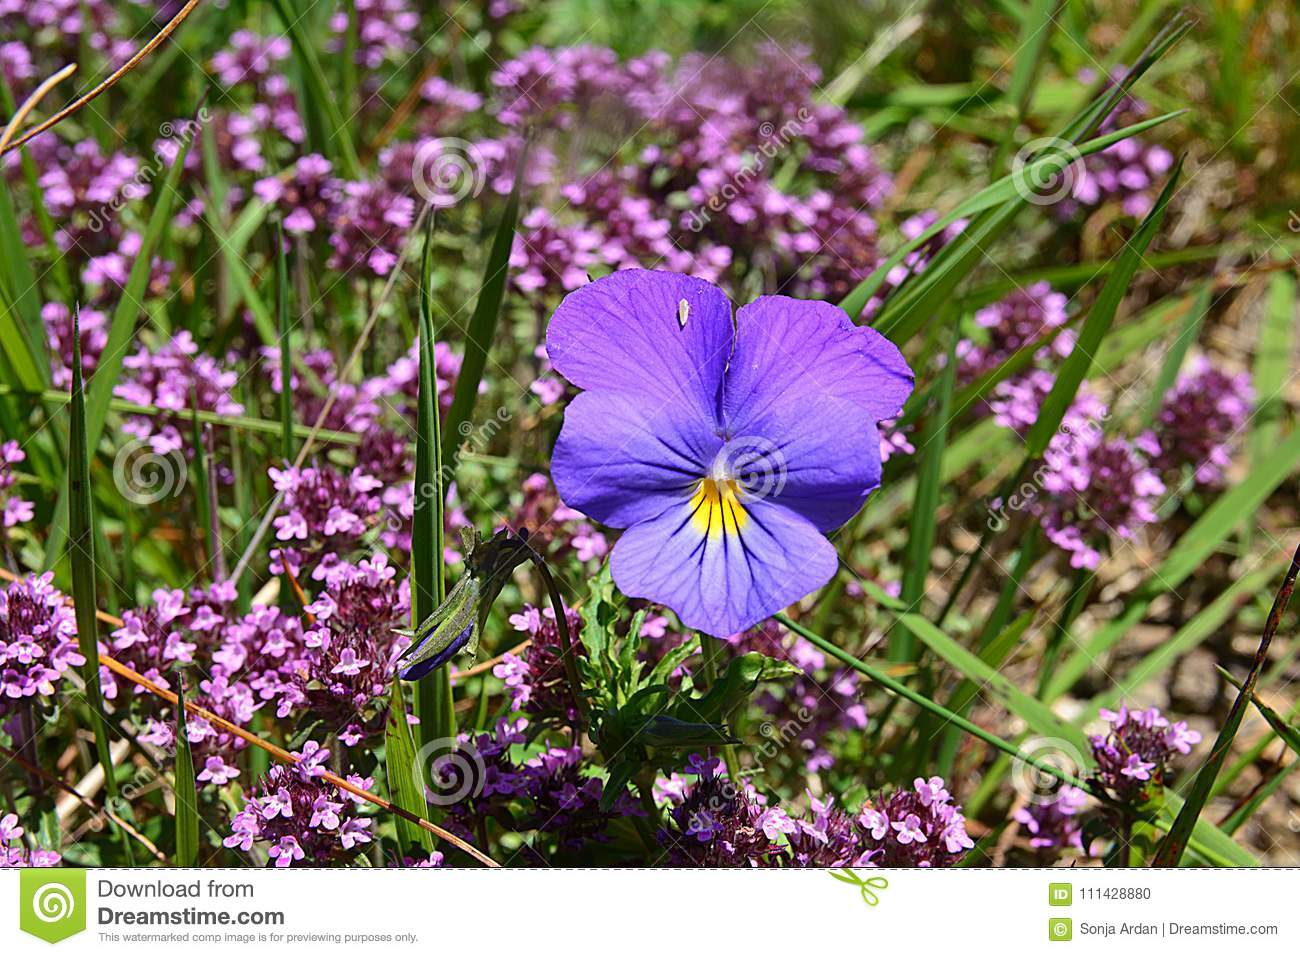 Larger blue purple flower in the group of small purple flower stock blue purple flower with yellow center viola tricolor also known as heartsease acts as a giant next to the smaller blossoms of the thymus serpyllum mightylinksfo